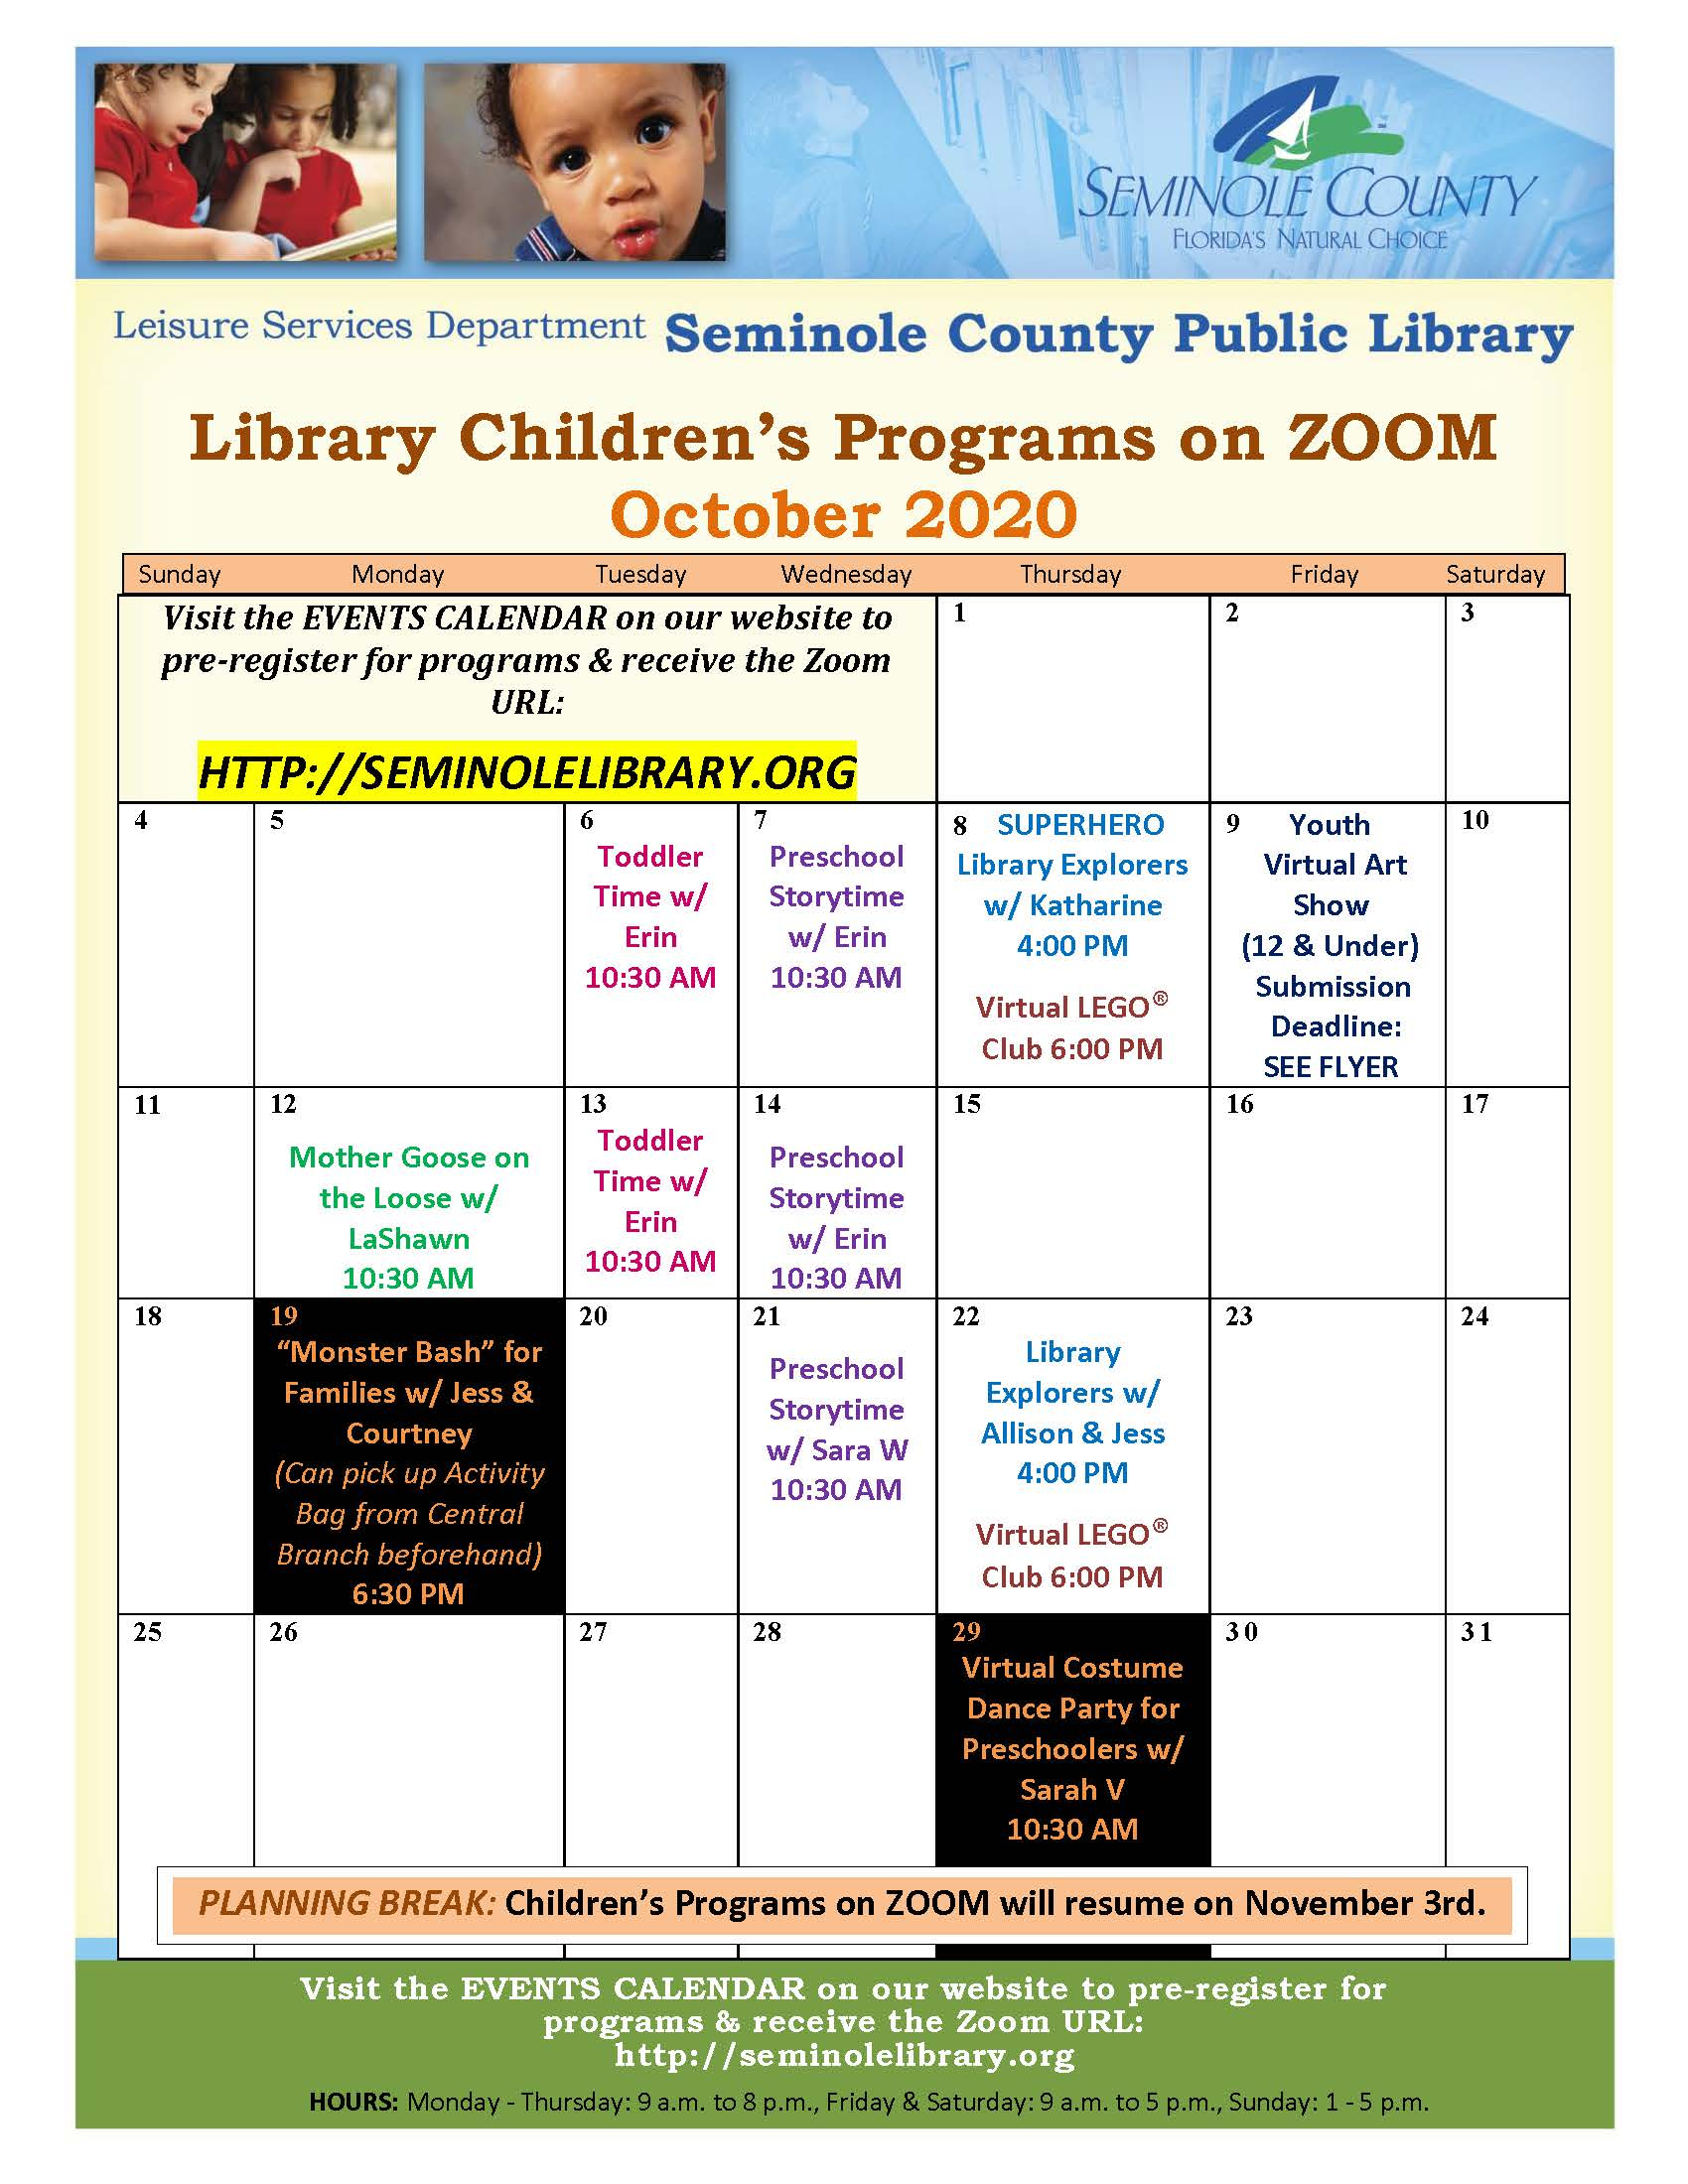 Library Programs for Children on Zoom - October 2020